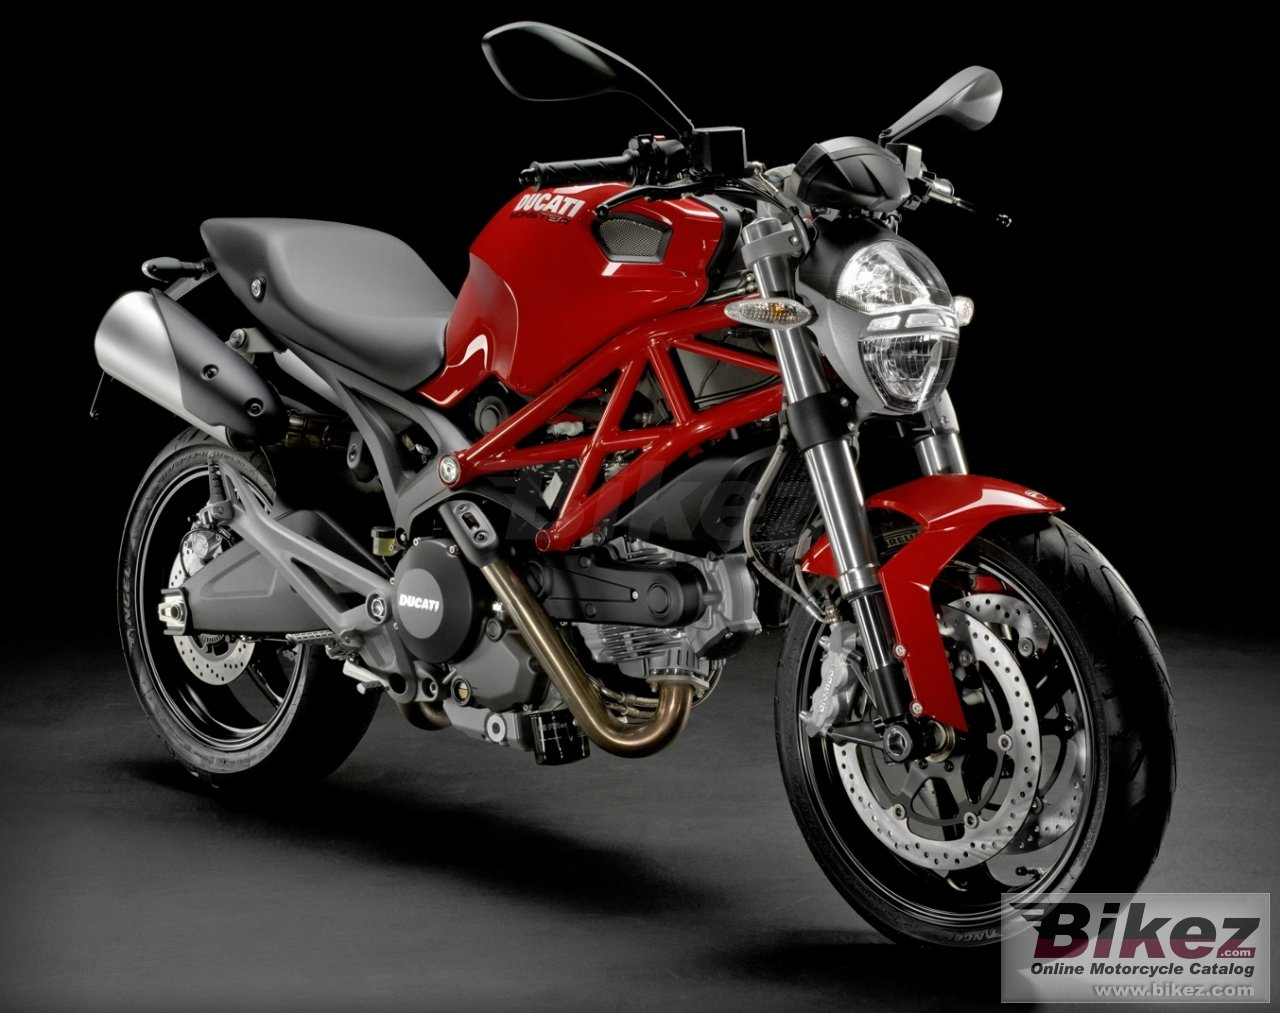 Big Ducati monster 795 picture and wallpaper from Bikez.com